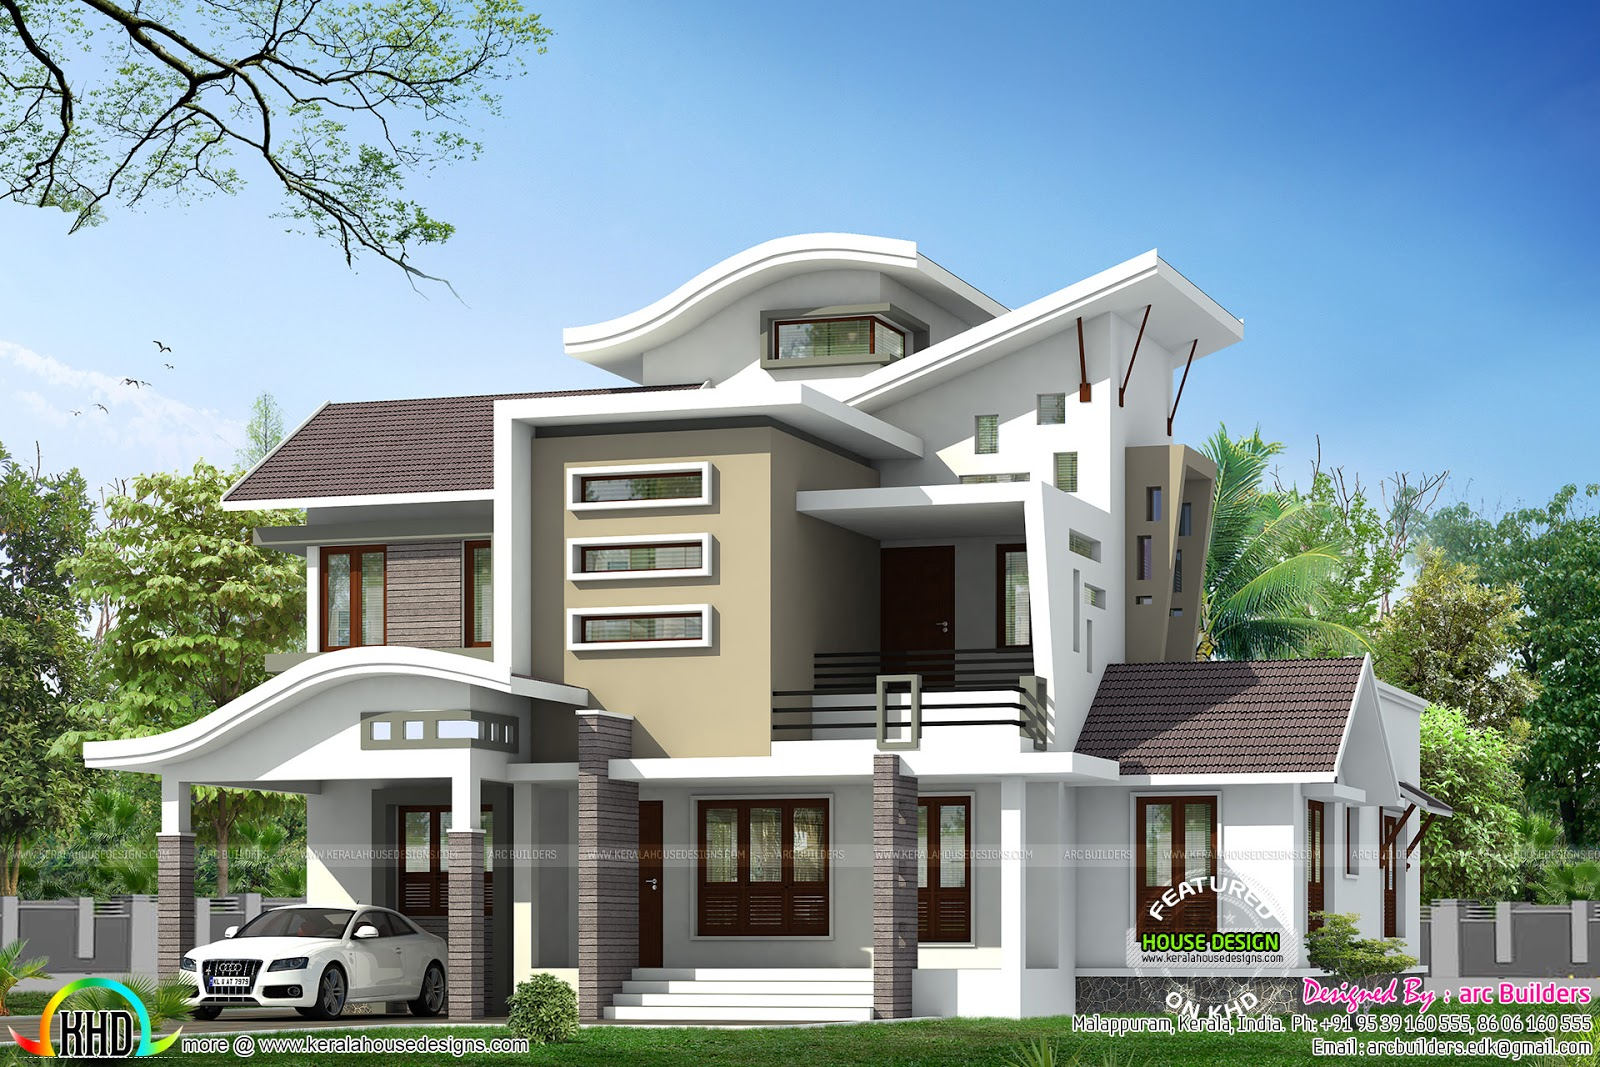 Unique ultra modern contemporary architecture kerala for Unique modern house designs